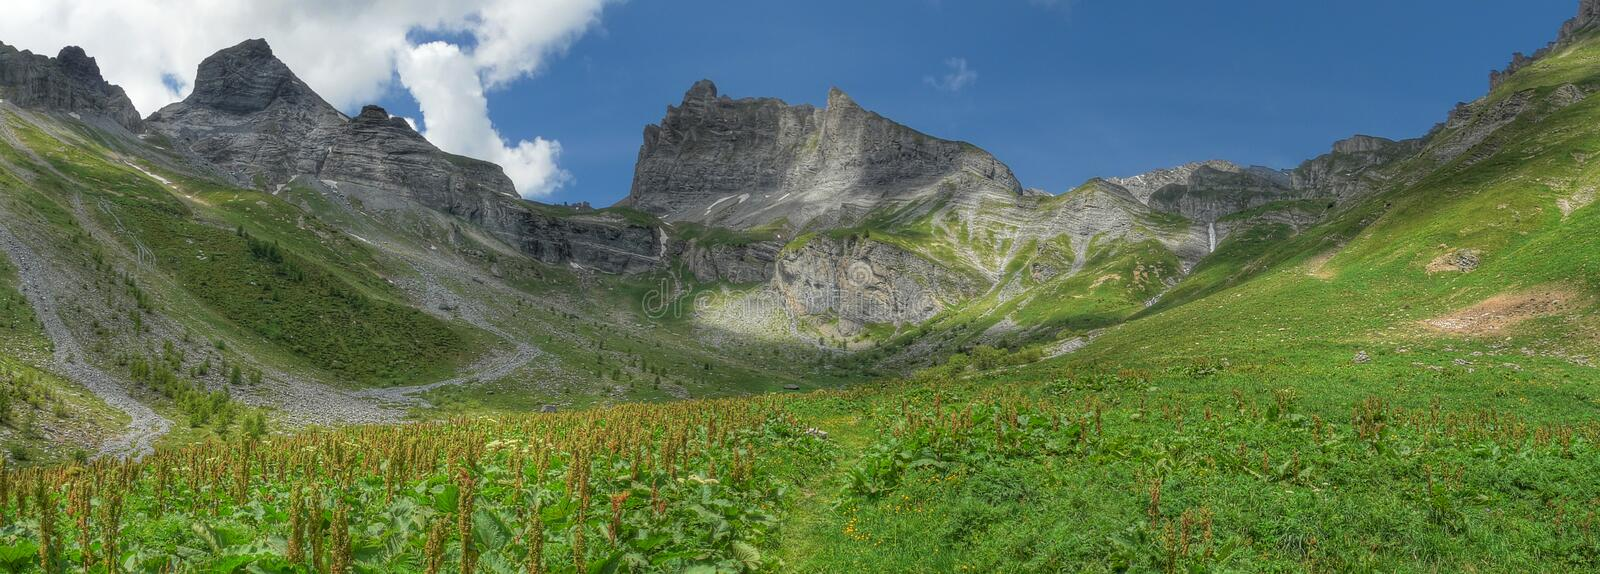 Download Petit Muveran Ovronnaz Switzerland Stock Image - Image of ovronnaz, mountain: 10241827